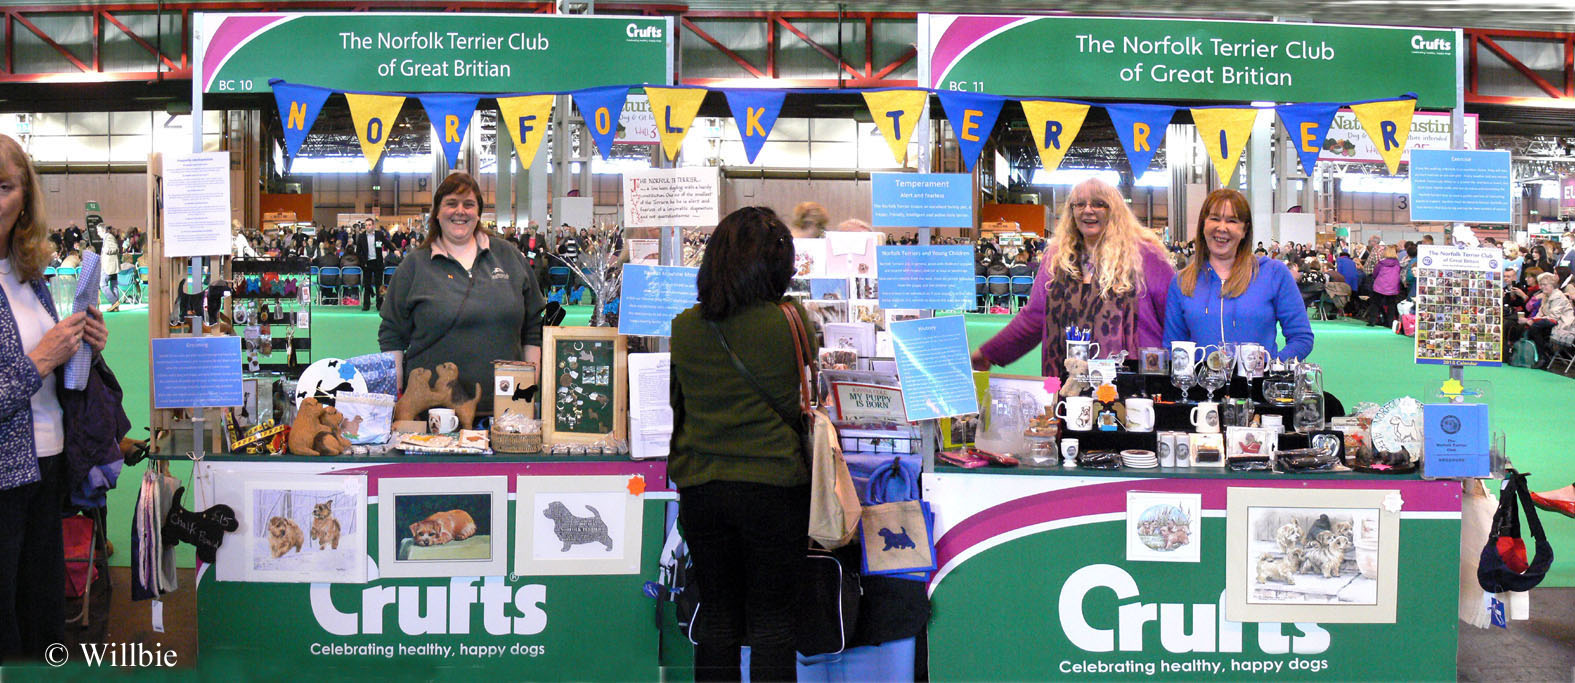 The Stand 1st prize Terrier Group. With Gina Dorkins, Lisa Charnokk, and Claire Butler.